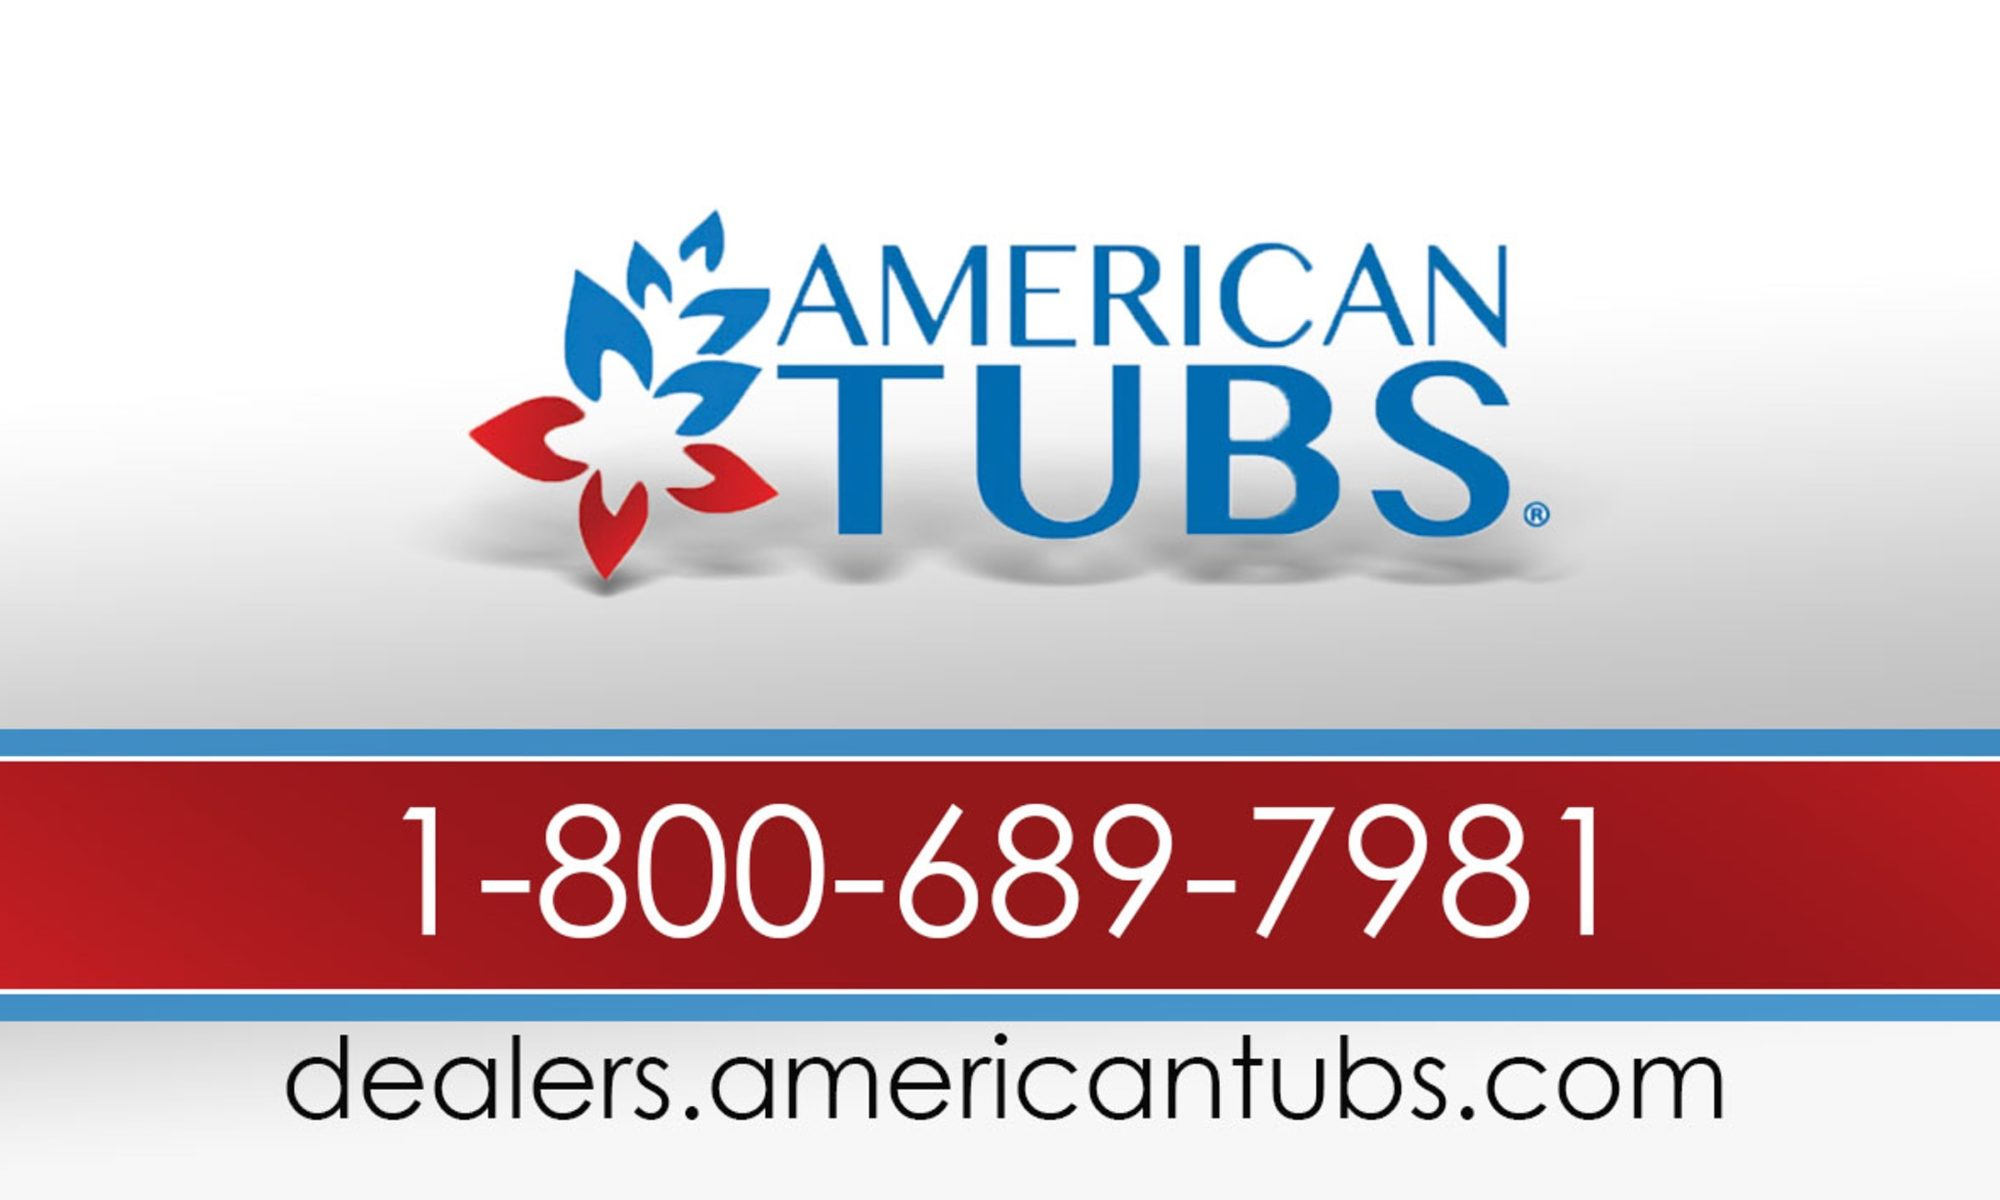 Walk In Bathtub Tempe, Walk In Bathtub Prices Tempe, Walk In Tubs For Sale Tempe, Ada Compliant Bathtubs Tempe, Bathtubs For Seniors Tempe, Best Walk In Bathtubs Tempe, Best Walk In Tubs Tempe, Cost Of Walk In Tub Tempe, Handicap Bathtubs Tempe, Hydrotherapy Tubs Tempe